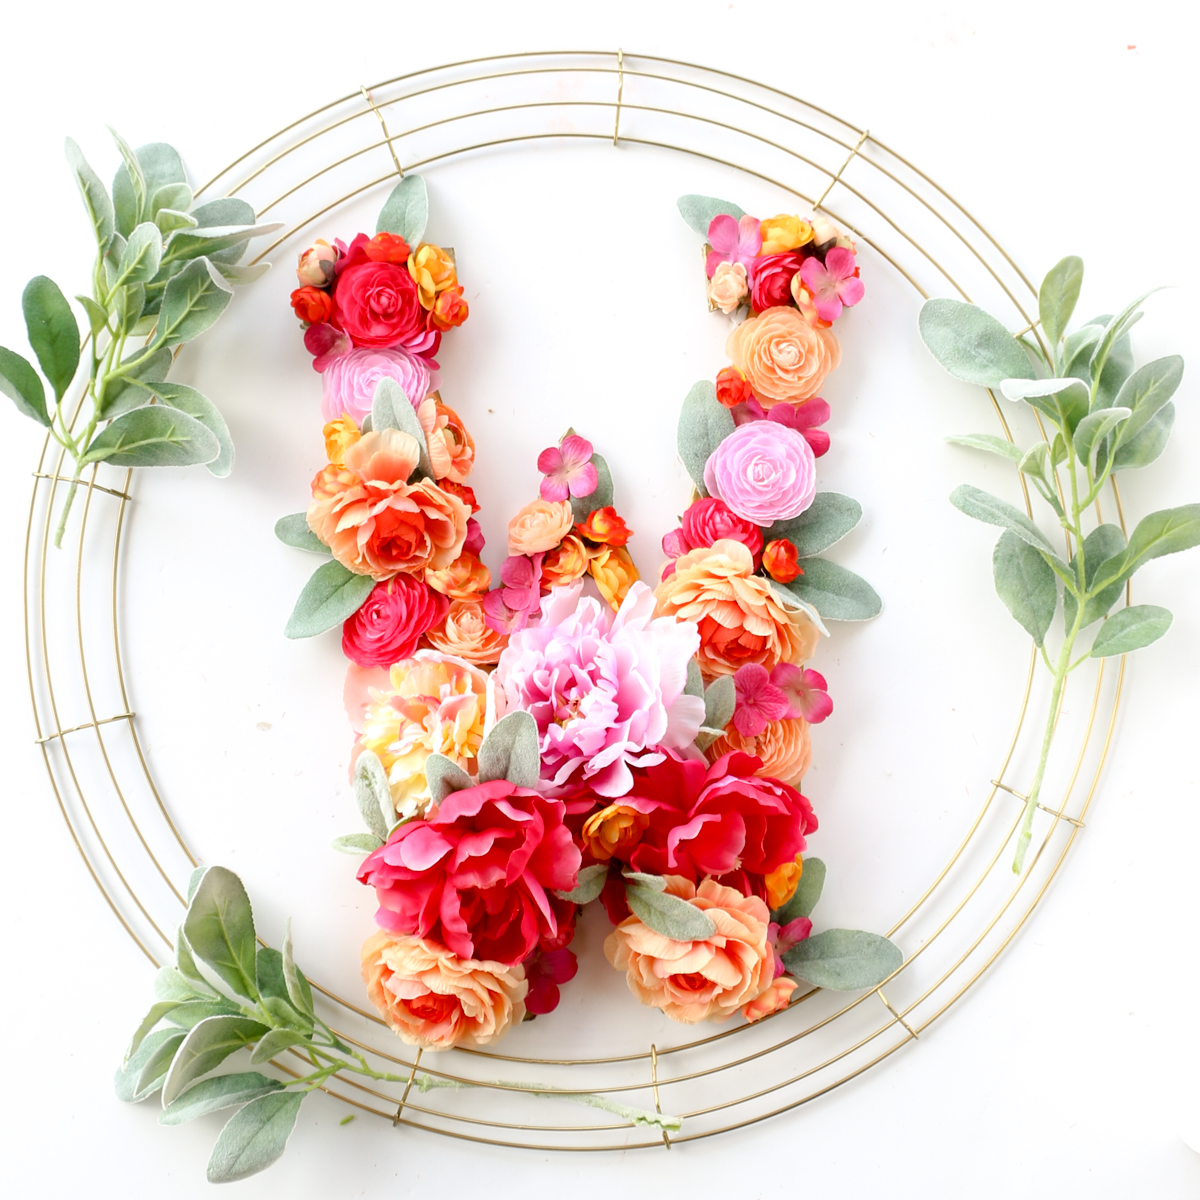 Diy it a modern floral monogram wreath a kailo chic life craft a diy floral monogram wreath for spring or summer using gold spray paint and faux mightylinksfo